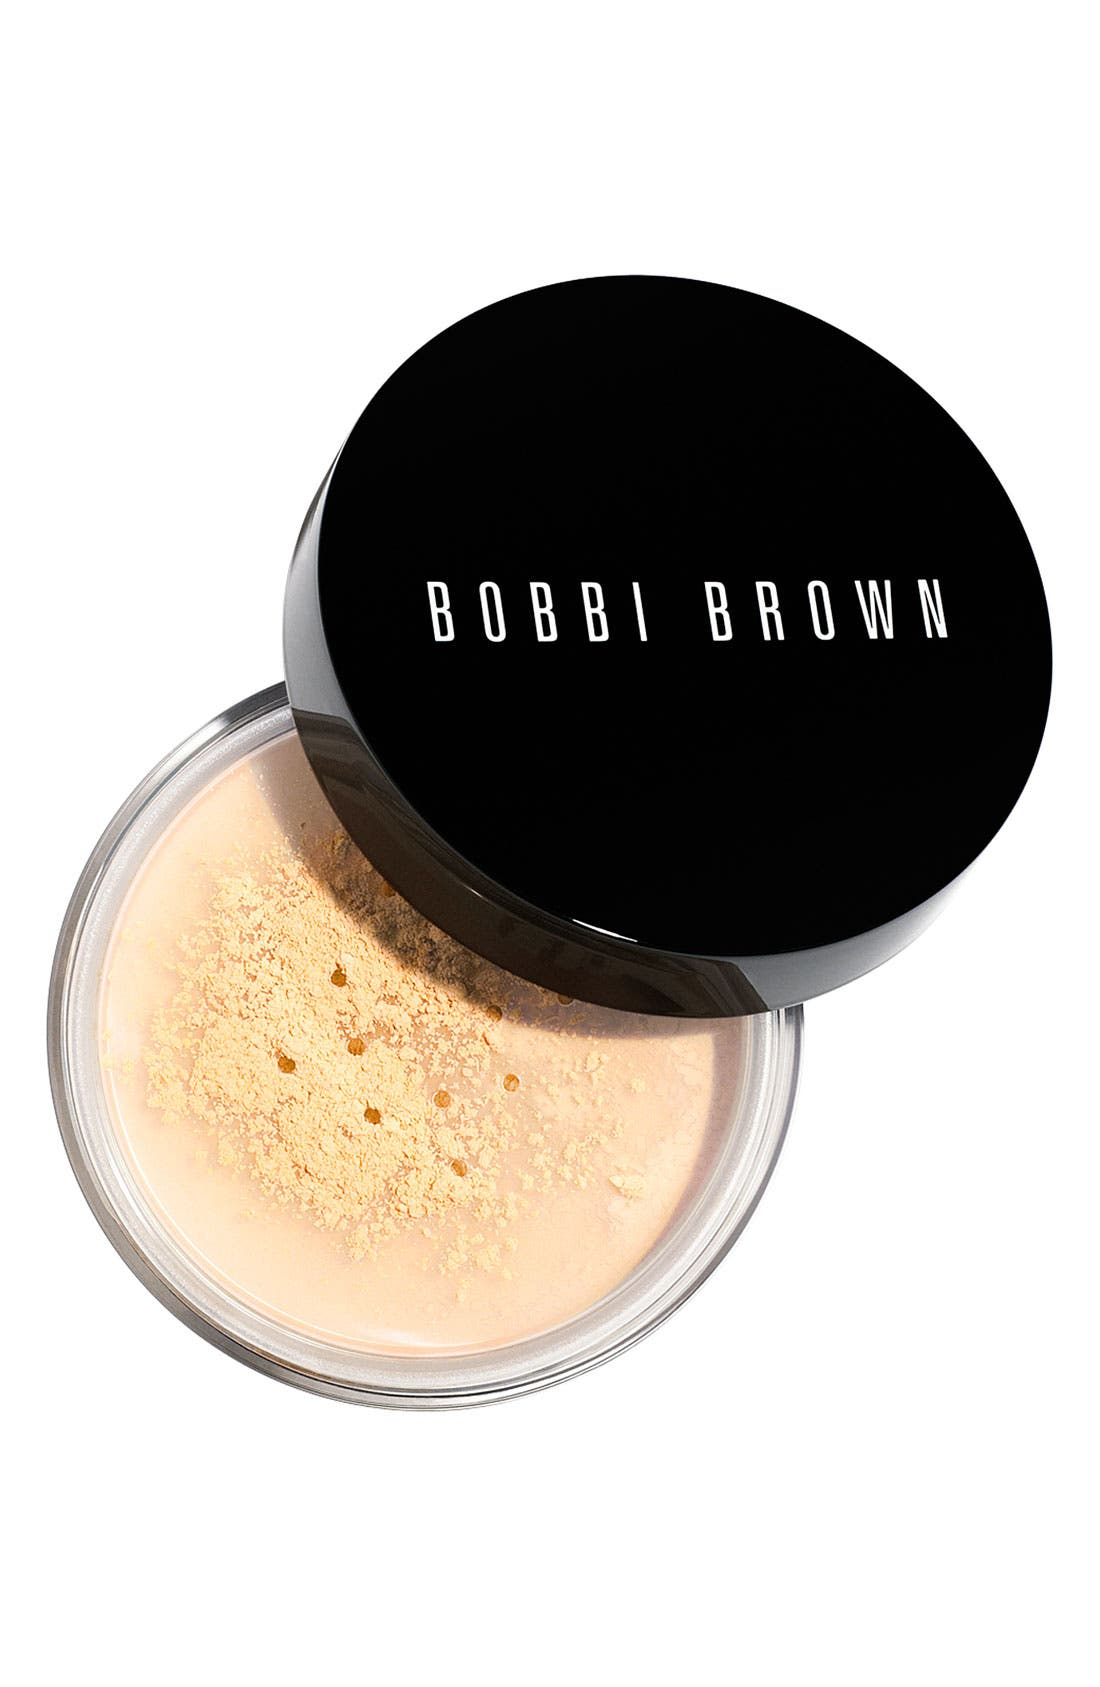 BOBBI BROWN,                             Sheer Finish Loose Powder,                             Main thumbnail 1, color,                             WARM NATURAL